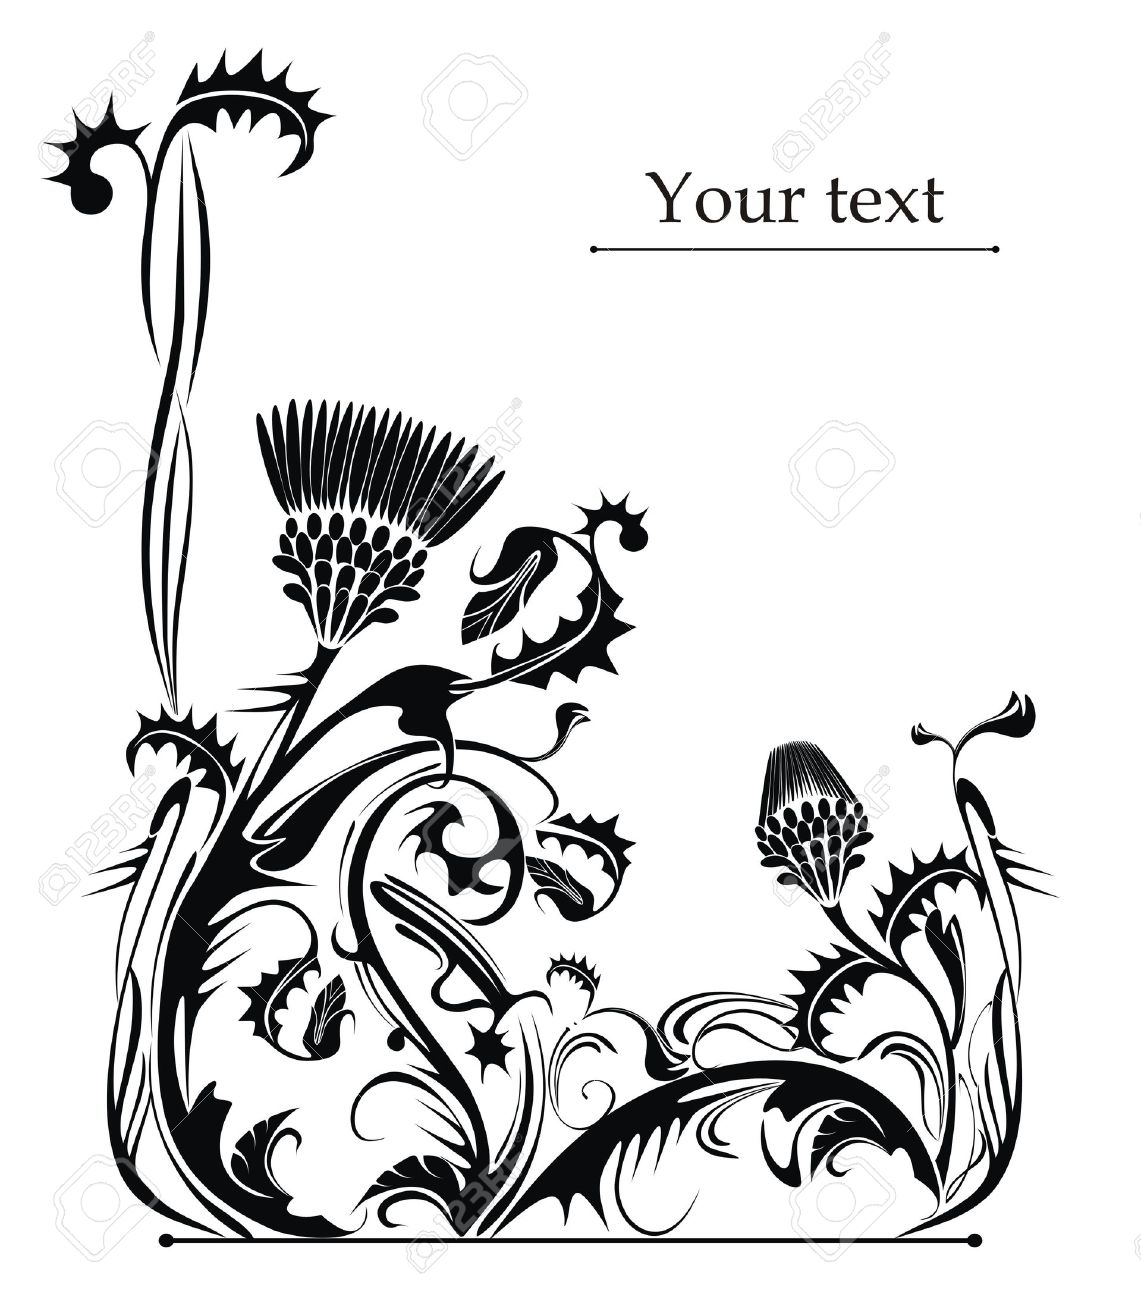 vector drawing of the thistle plant - 14569140